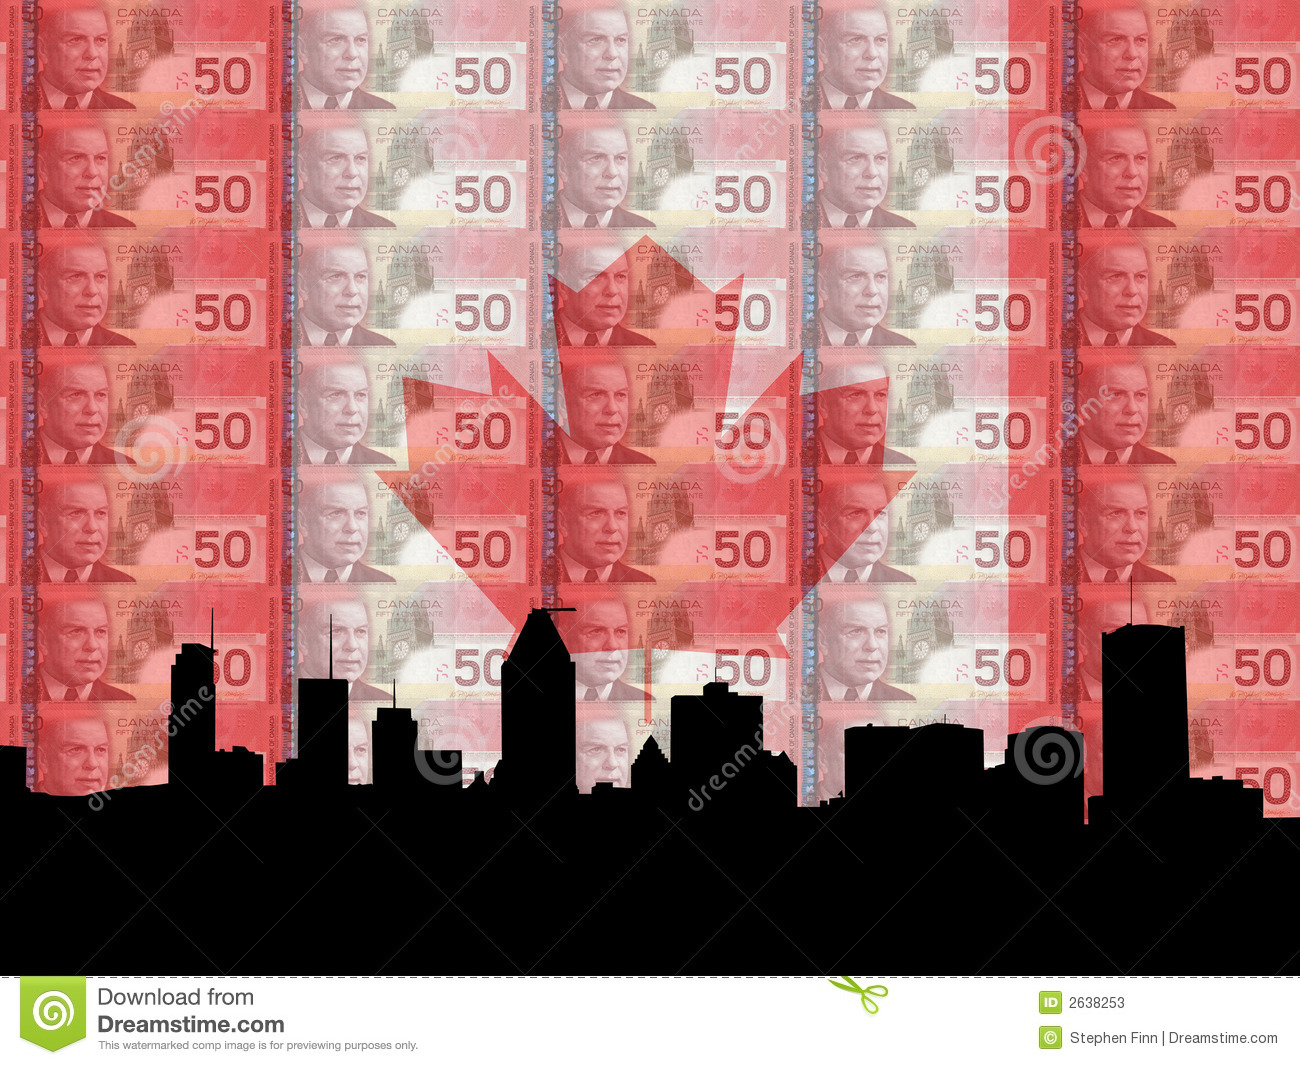 forex currency exchange montreal